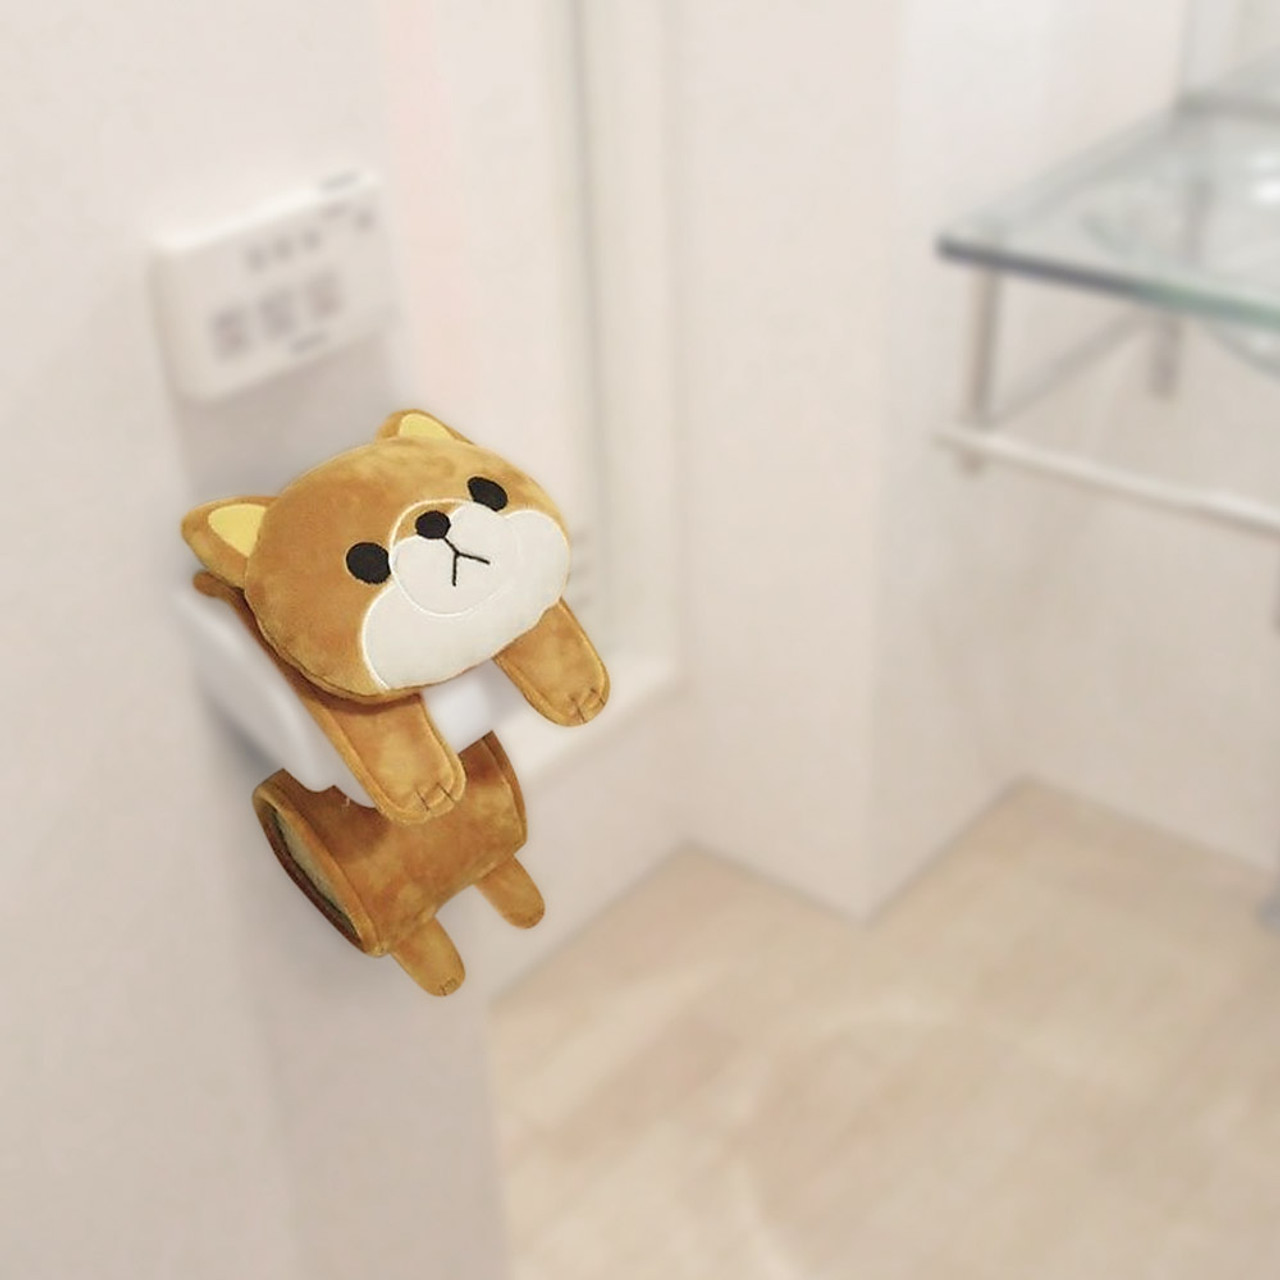 Meiho Shiba Inu Dog Toilet Roll Holder Plush Cover ( Using View )